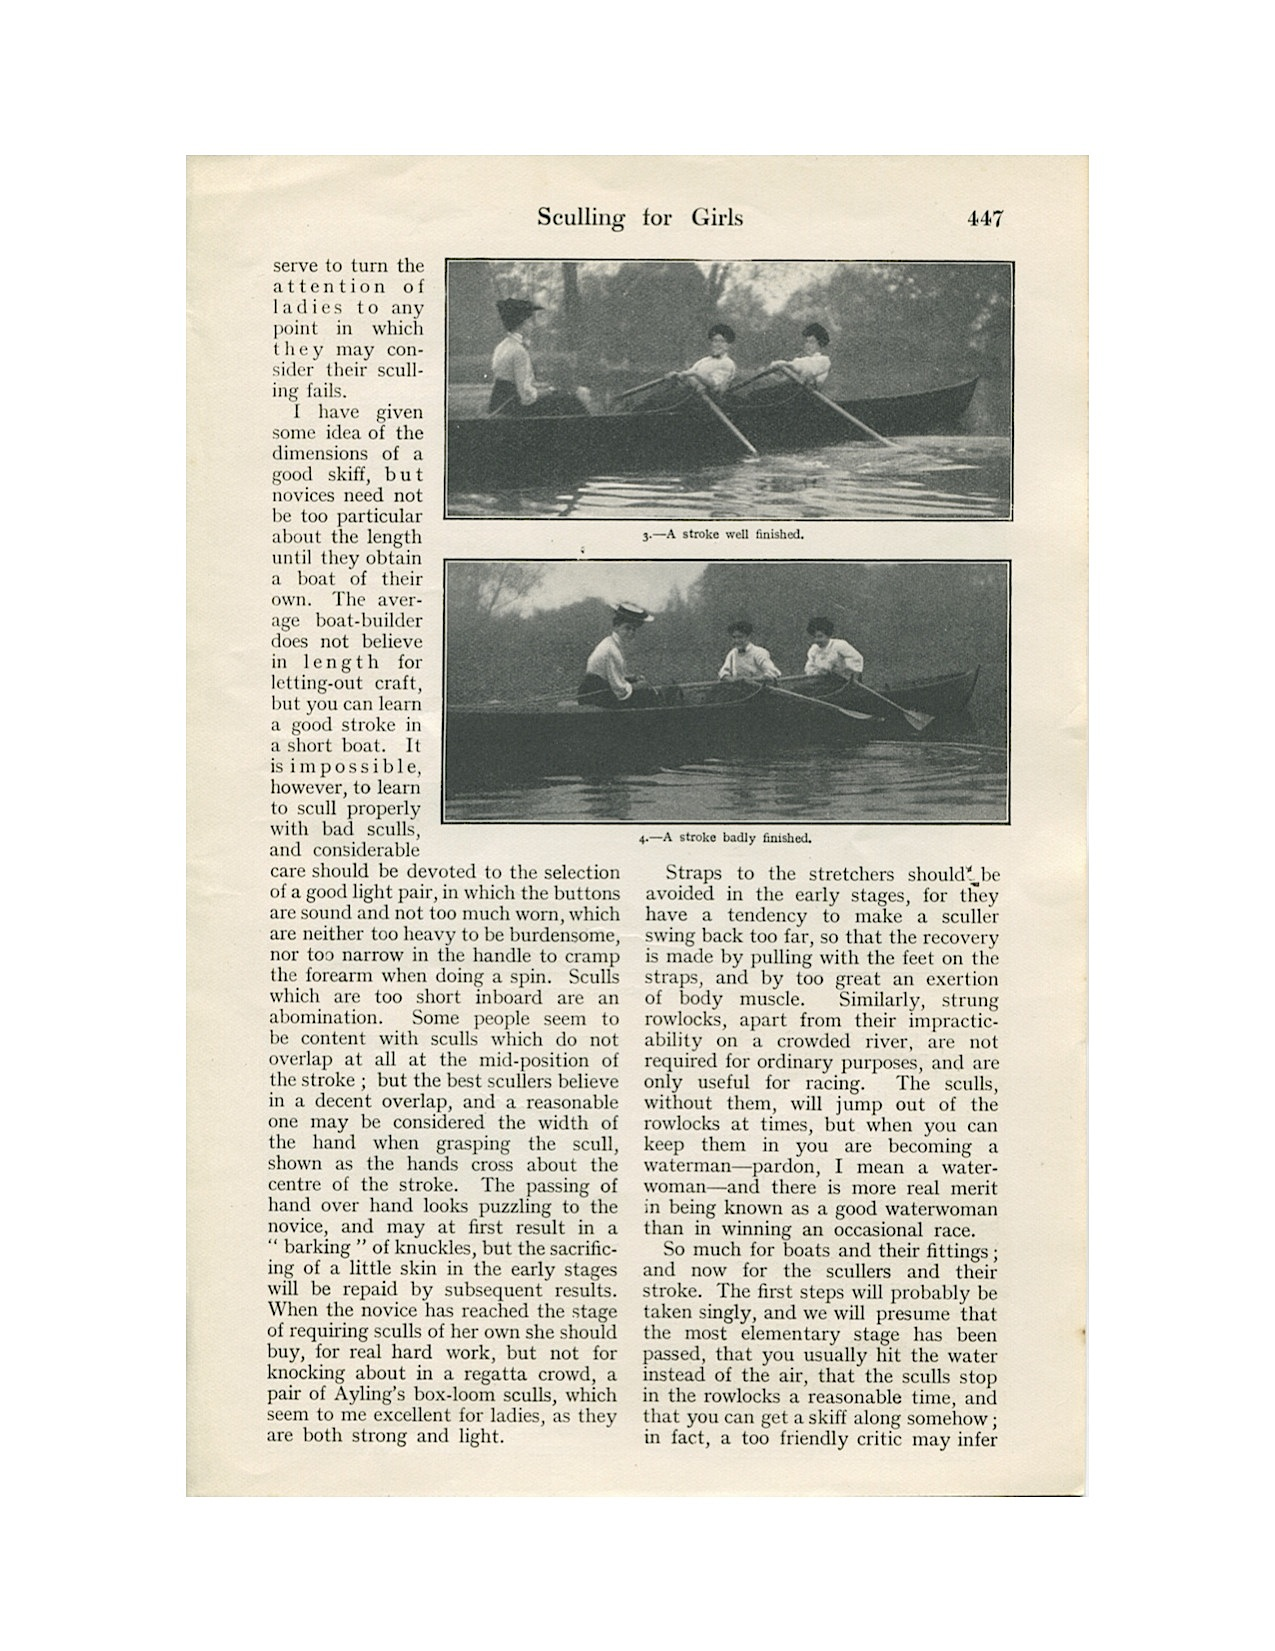 Sculling for Girls 1906-3